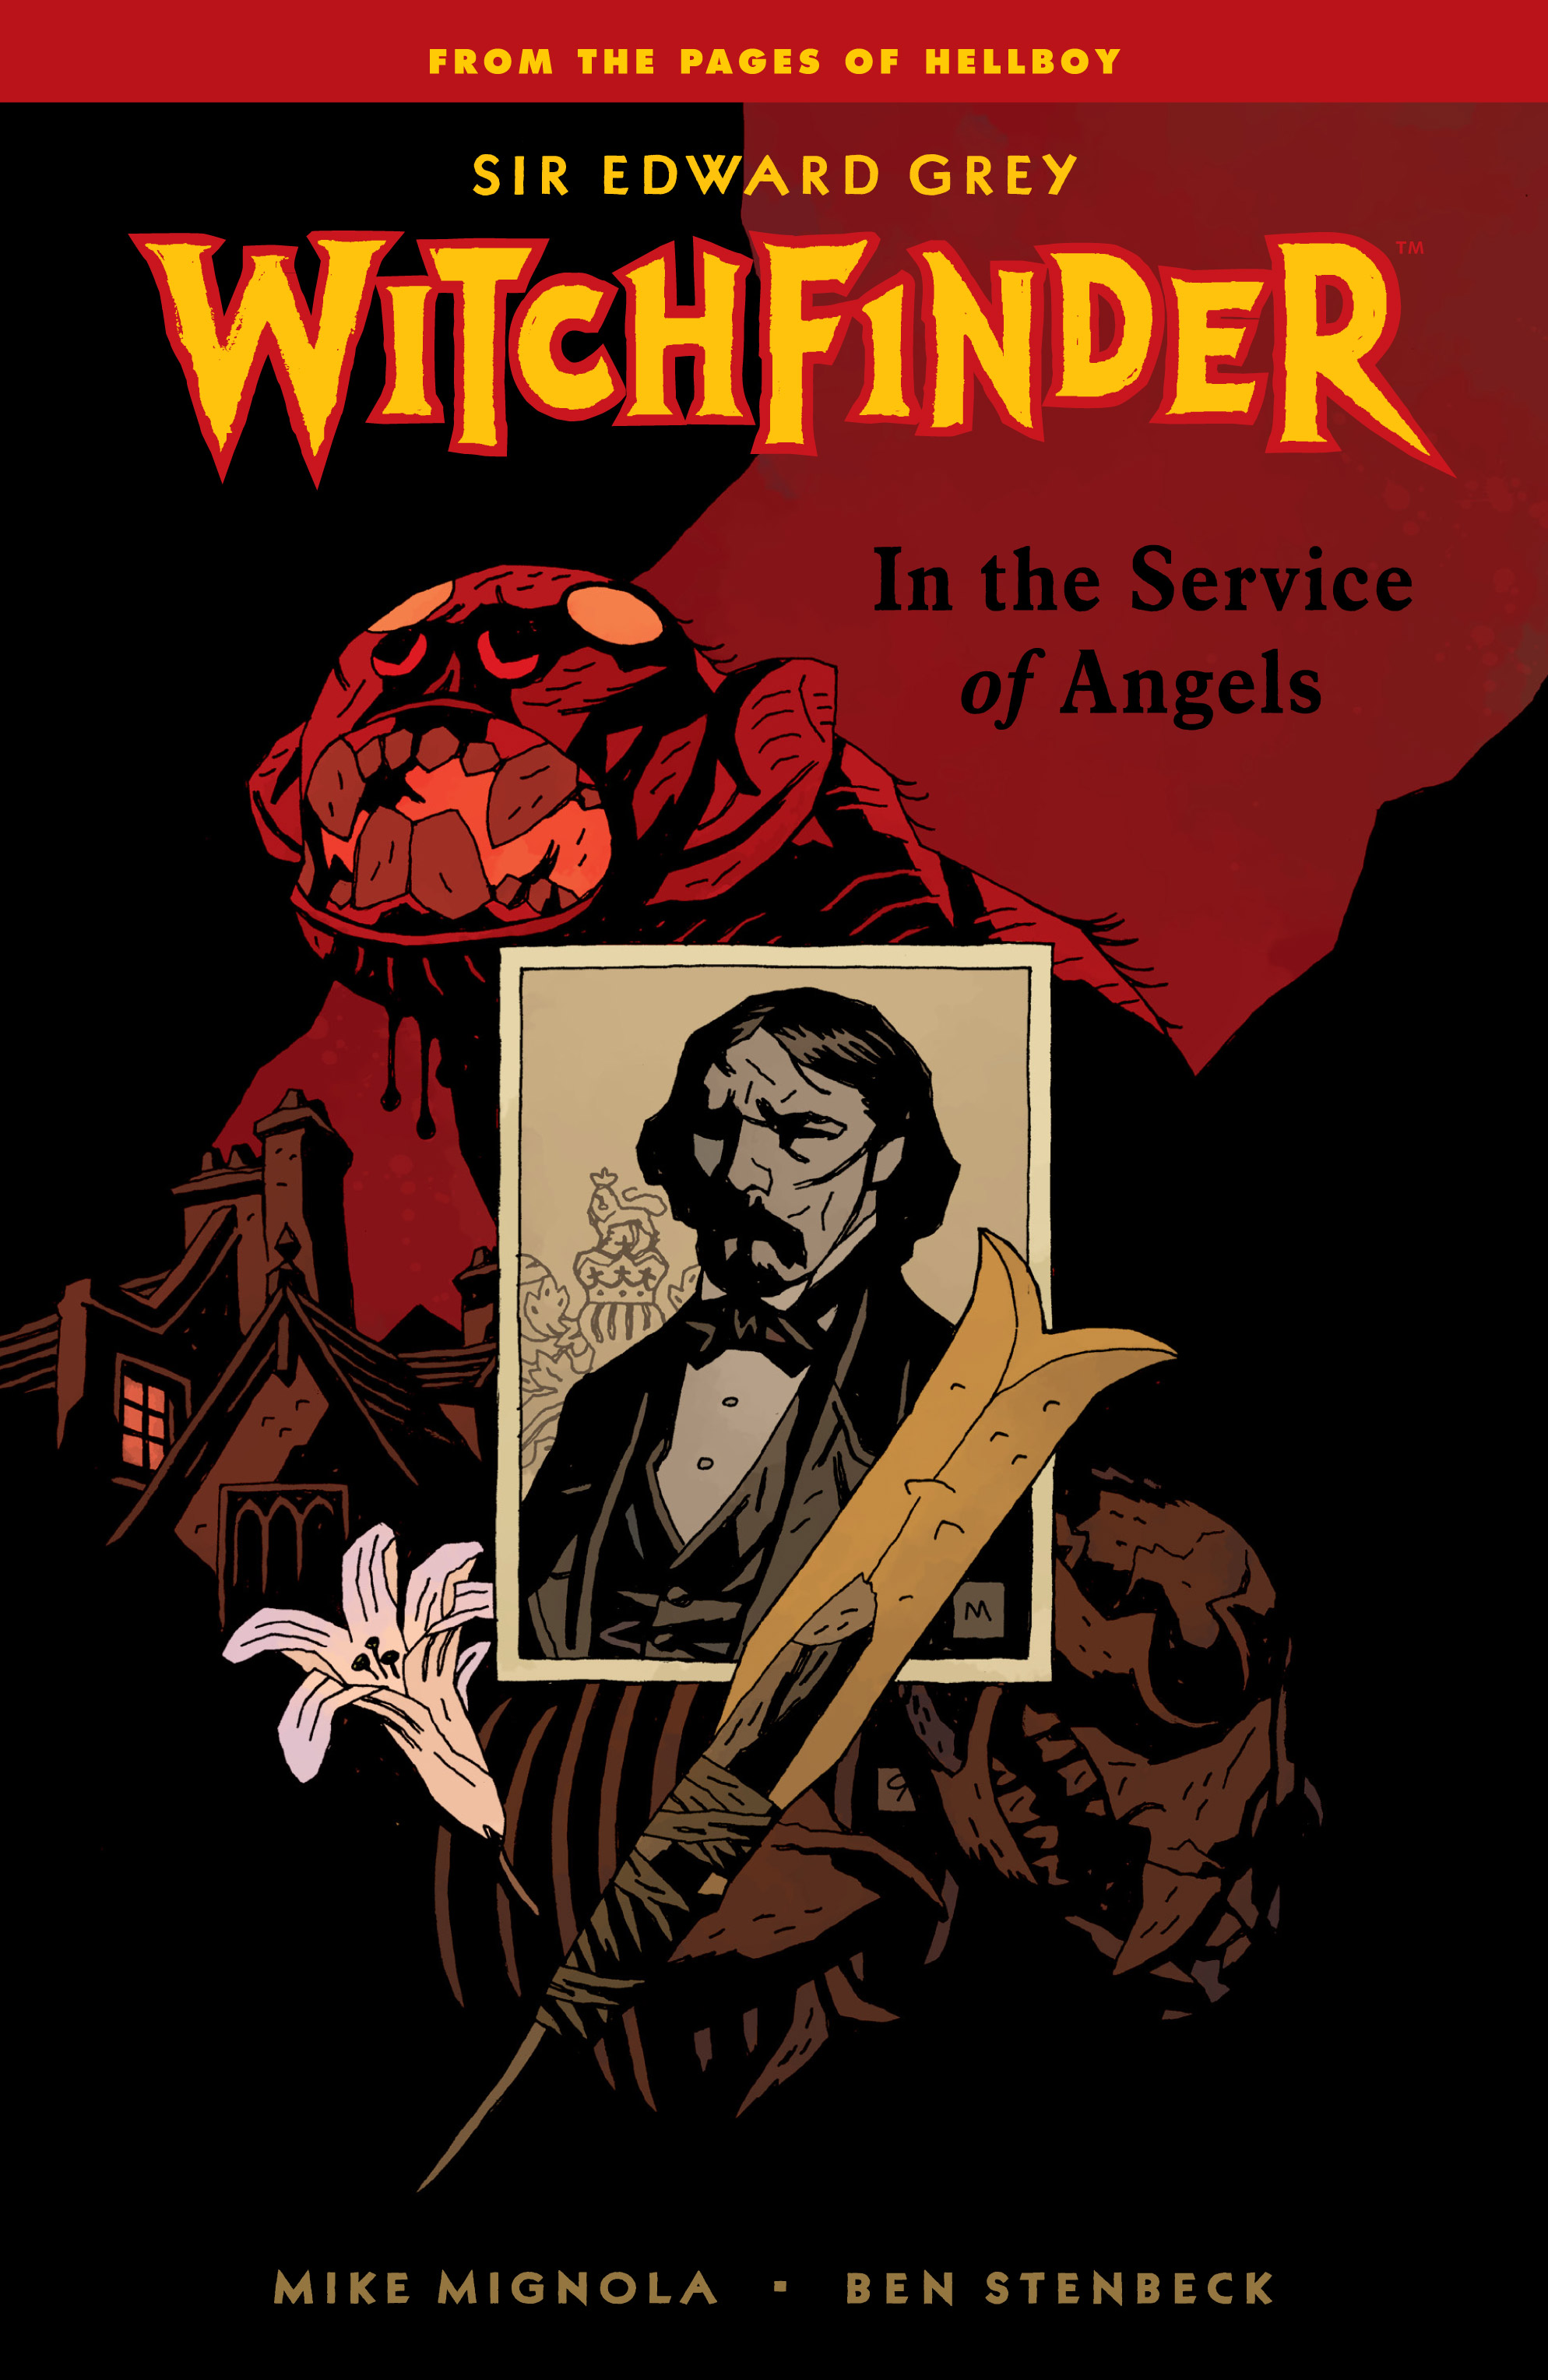 Read online Sir Edward Grey, Witchfinder: In the Service of Angels comic -  Issue # TPB - 1